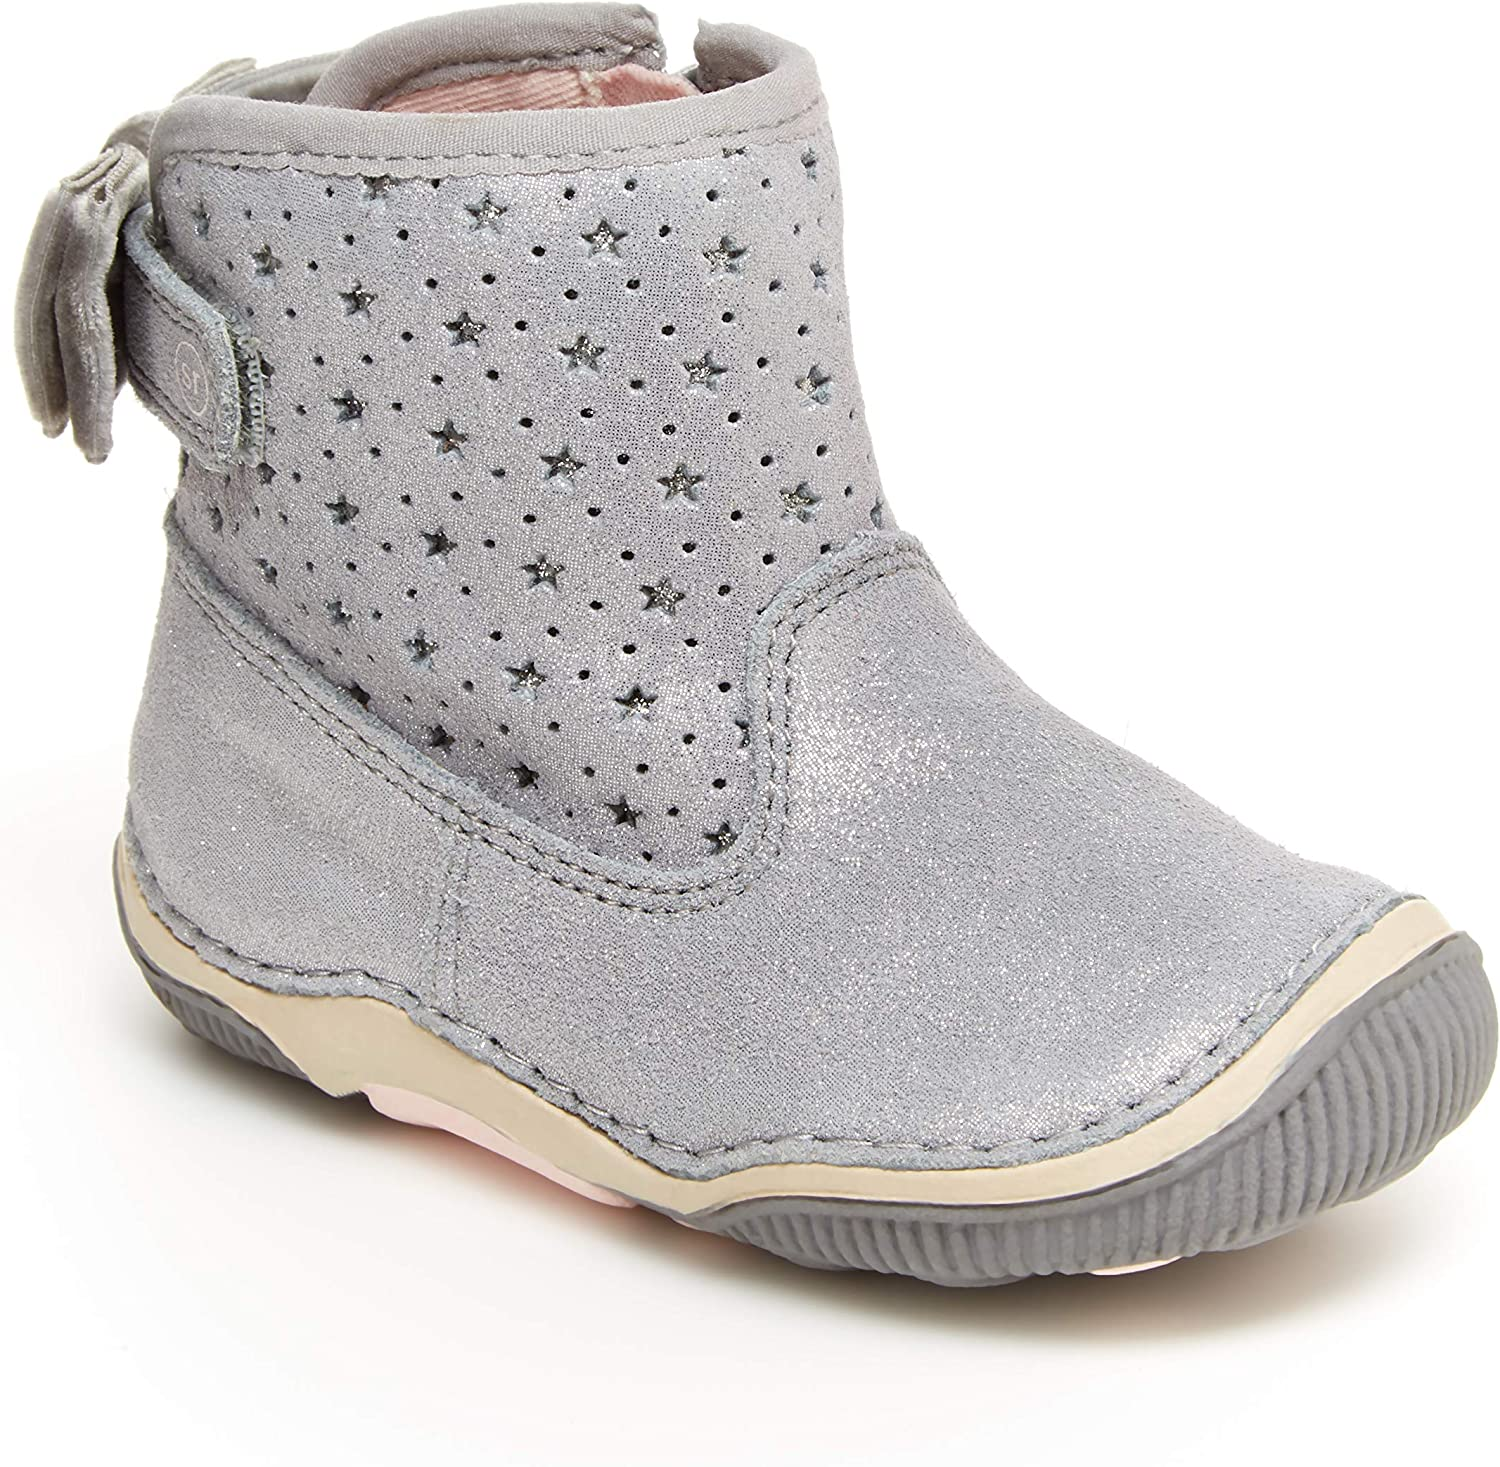 Stride Rite Unisex-Child SRT excellence Angie Shoe Bootie Fees free Walker First